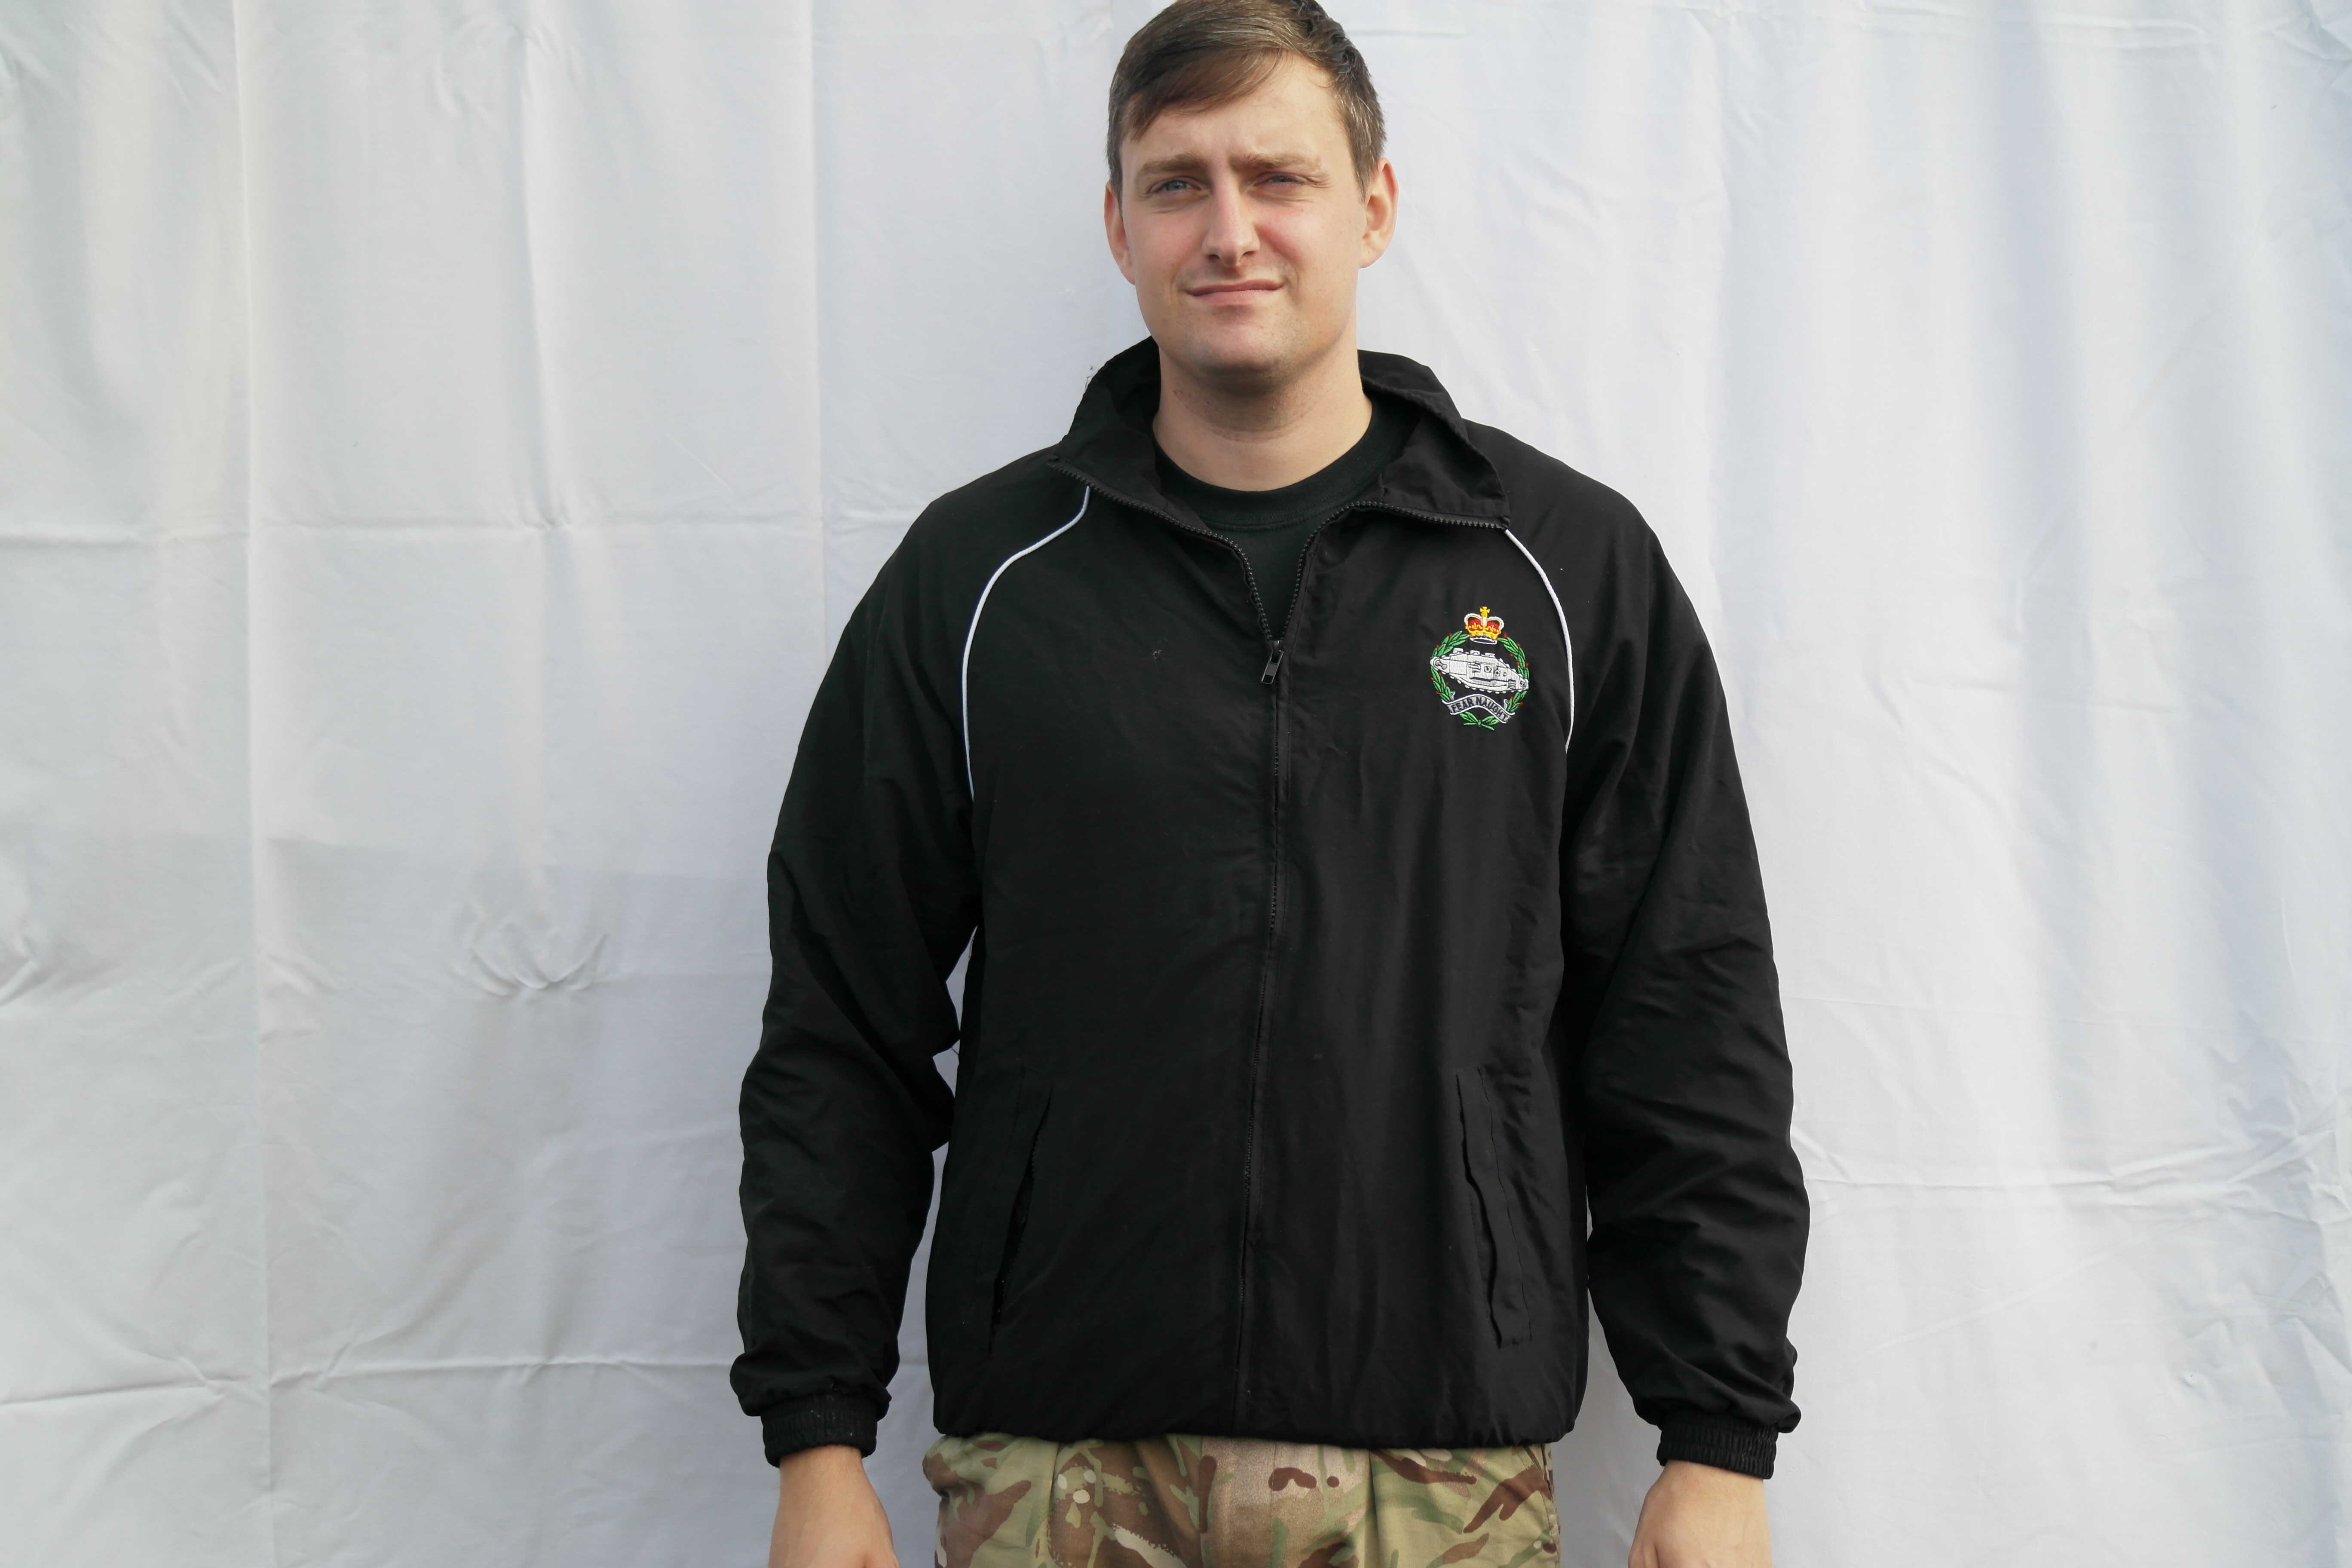 RTR Training Jacket (0177 B3) Medium